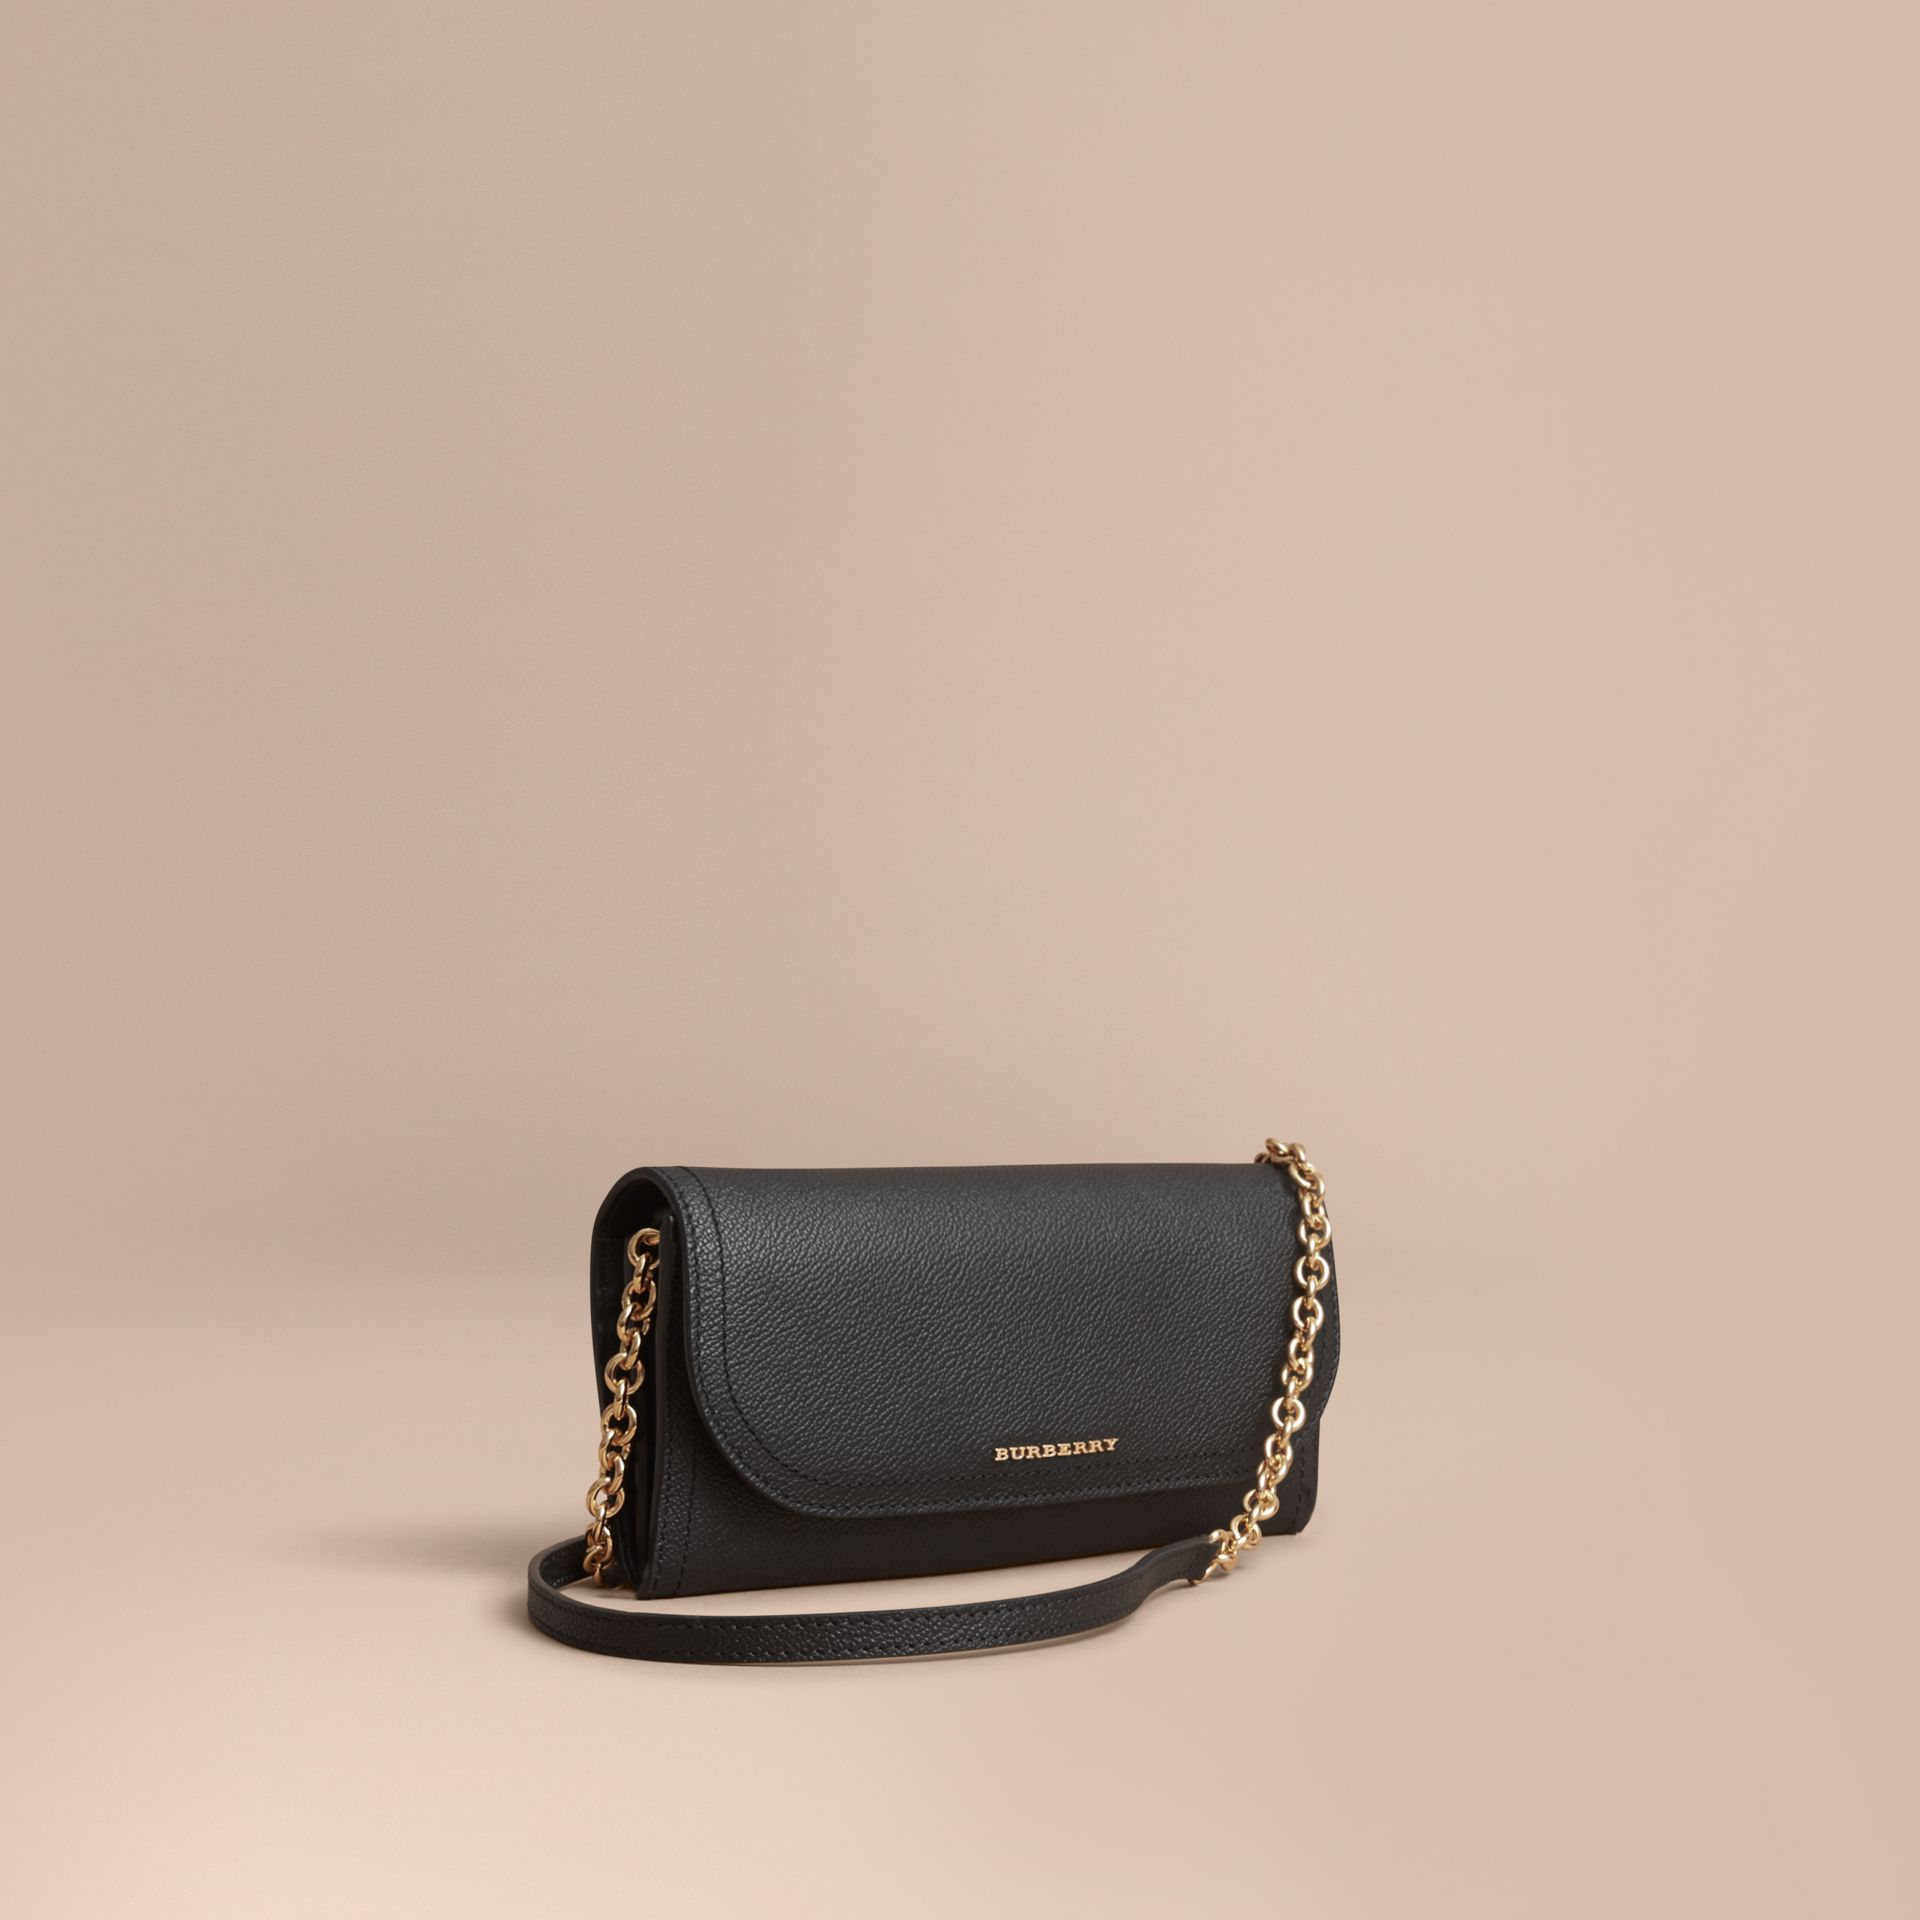 Leather Wallet with Chain in Black - Women | Burberry Australia - gallery image 1